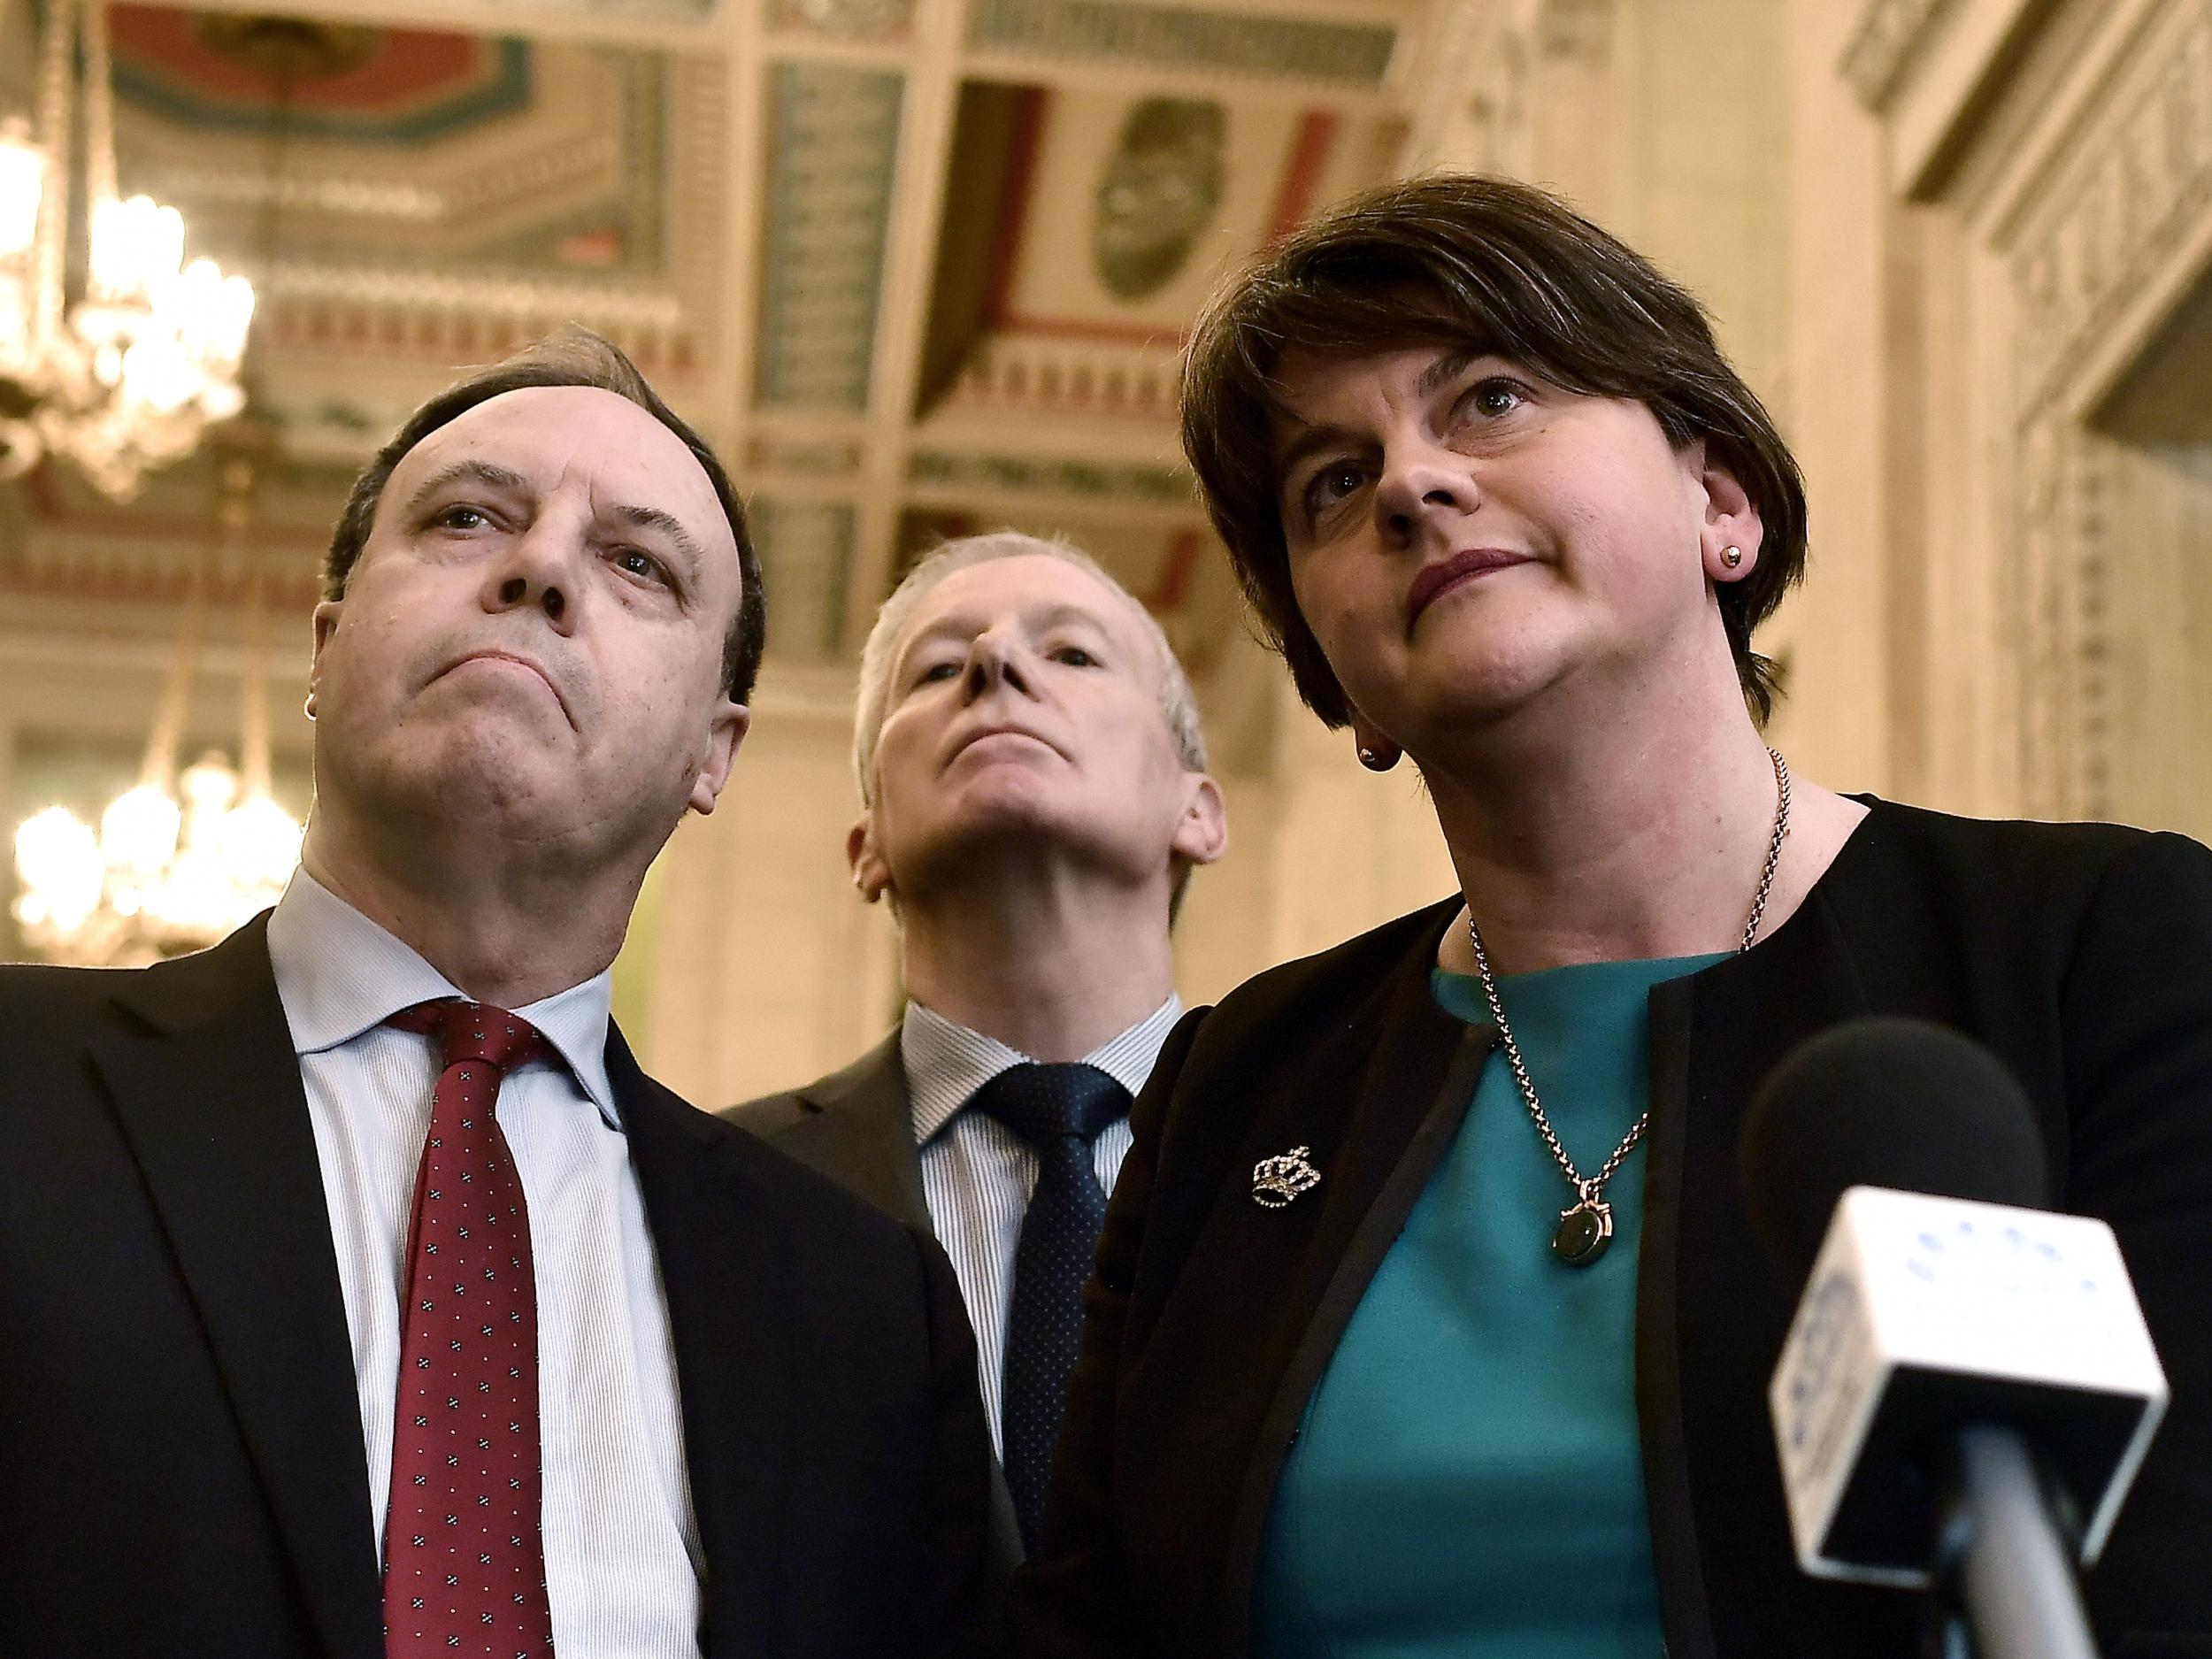 Northern Ireland latest: Arlene Foster says there is 'no prospect' of deal to restore Stormont government